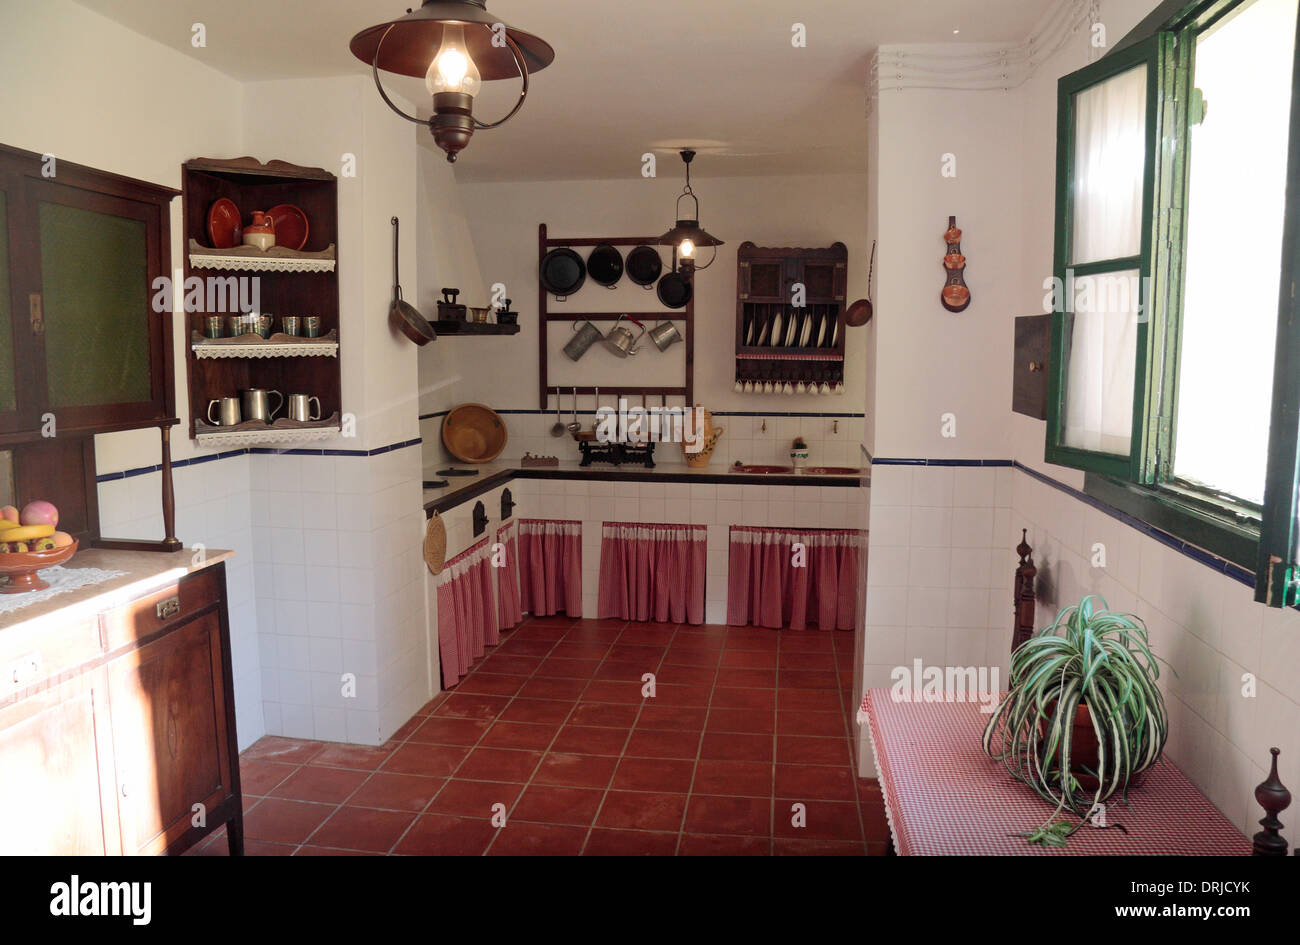 The Victorian Kitchen Company Kitchen No 21 One Of The Victorian Style Houses Built By The Rio